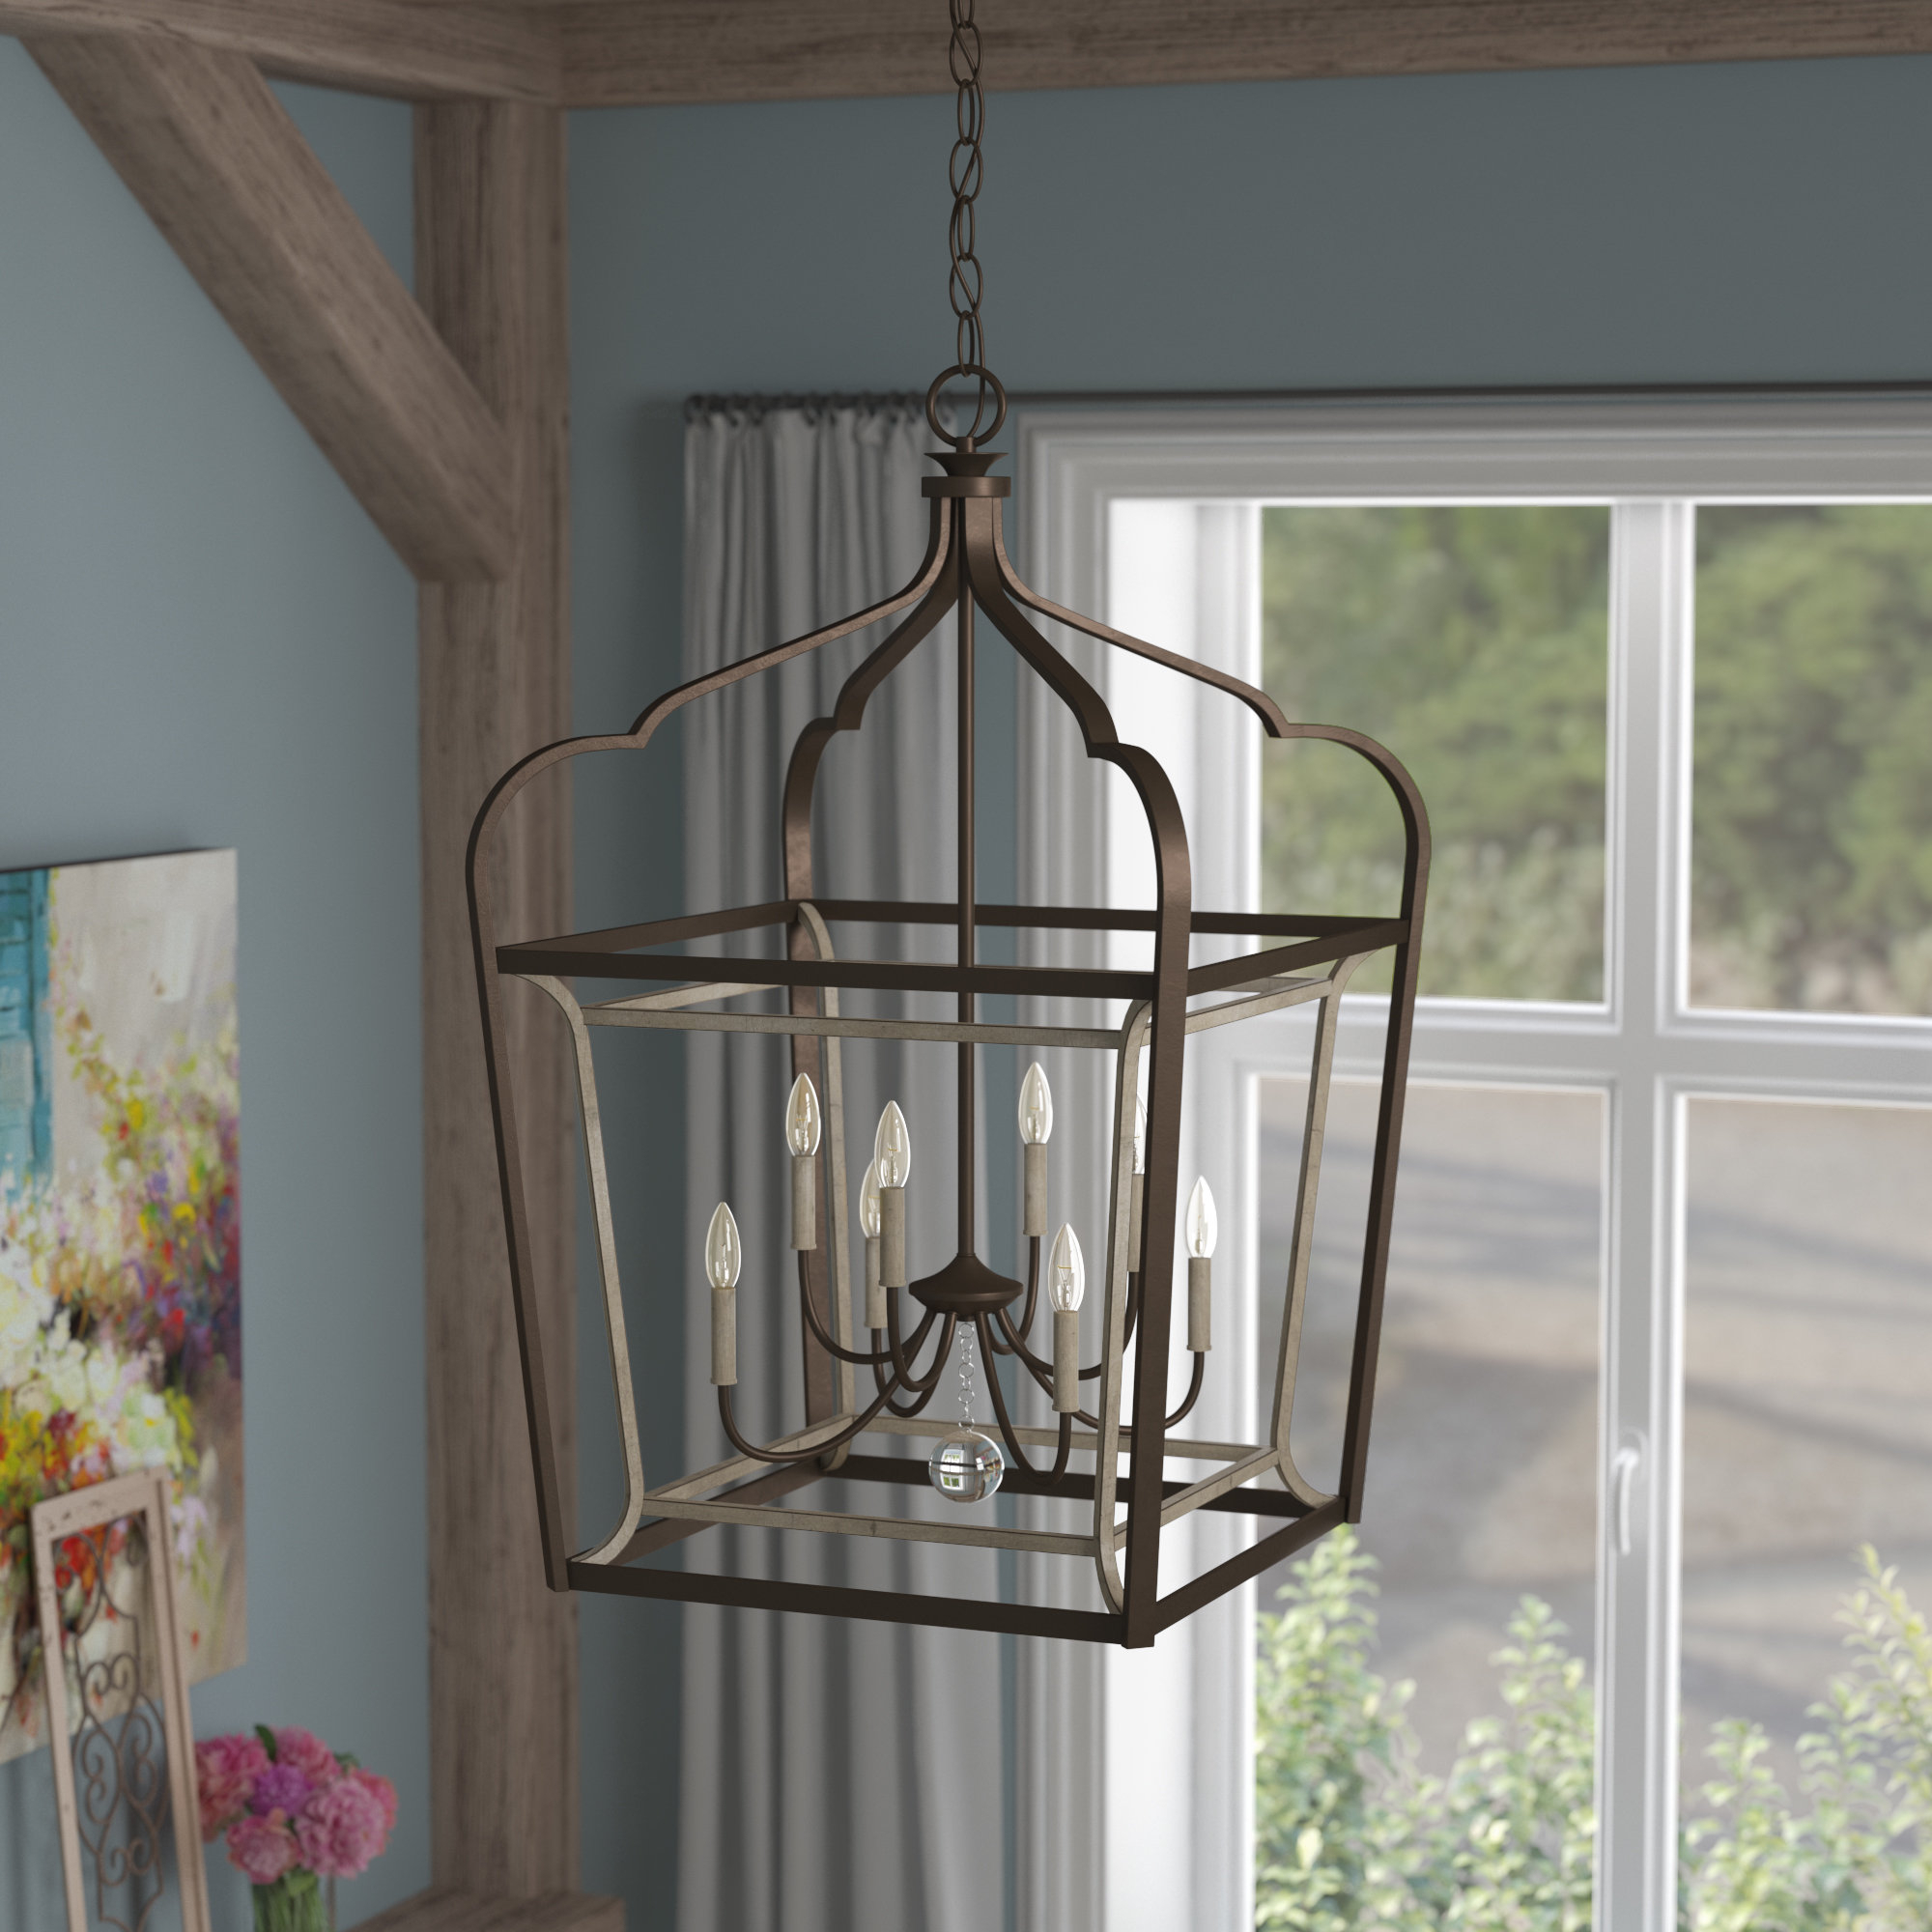 Evangeline 8-Light Lantern Geometric Pendant with Fashionable Carmen 8-Light Lantern Geometric Pendants